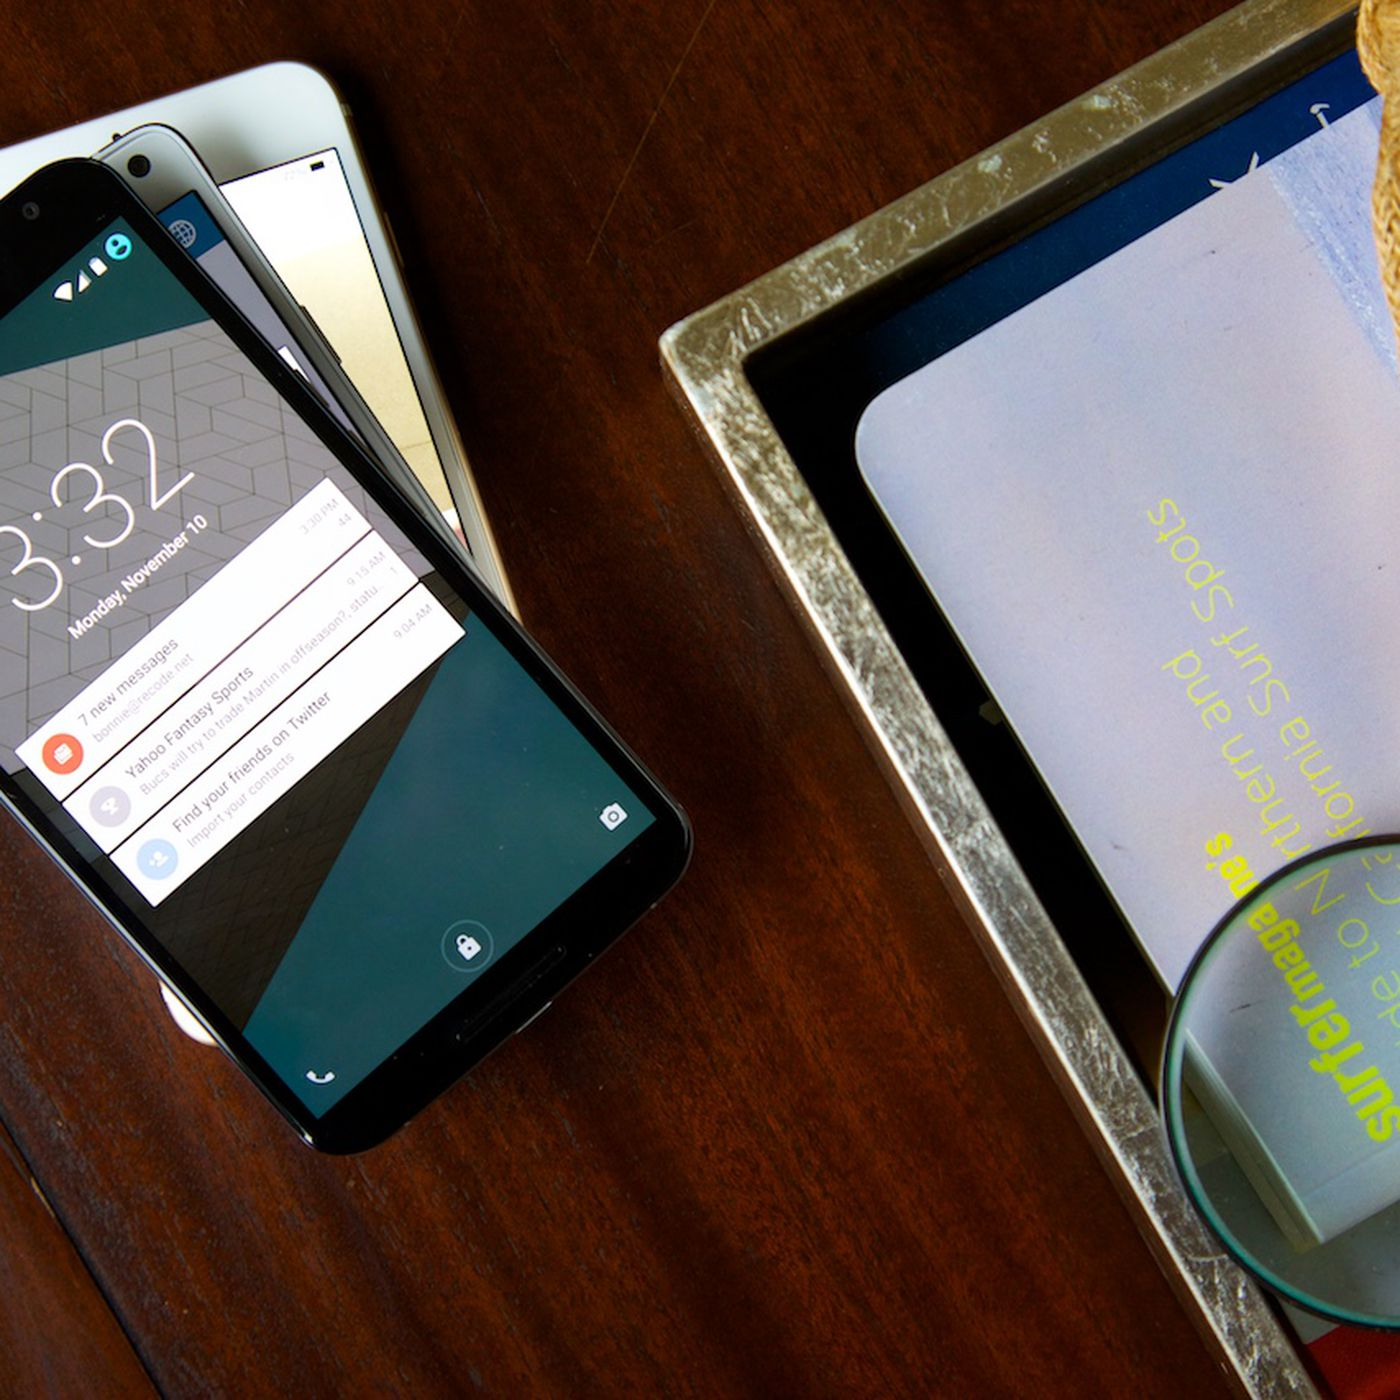 Nexus 6 Review: A Sweet Treat for Those Who Crave Big Phones - Vox